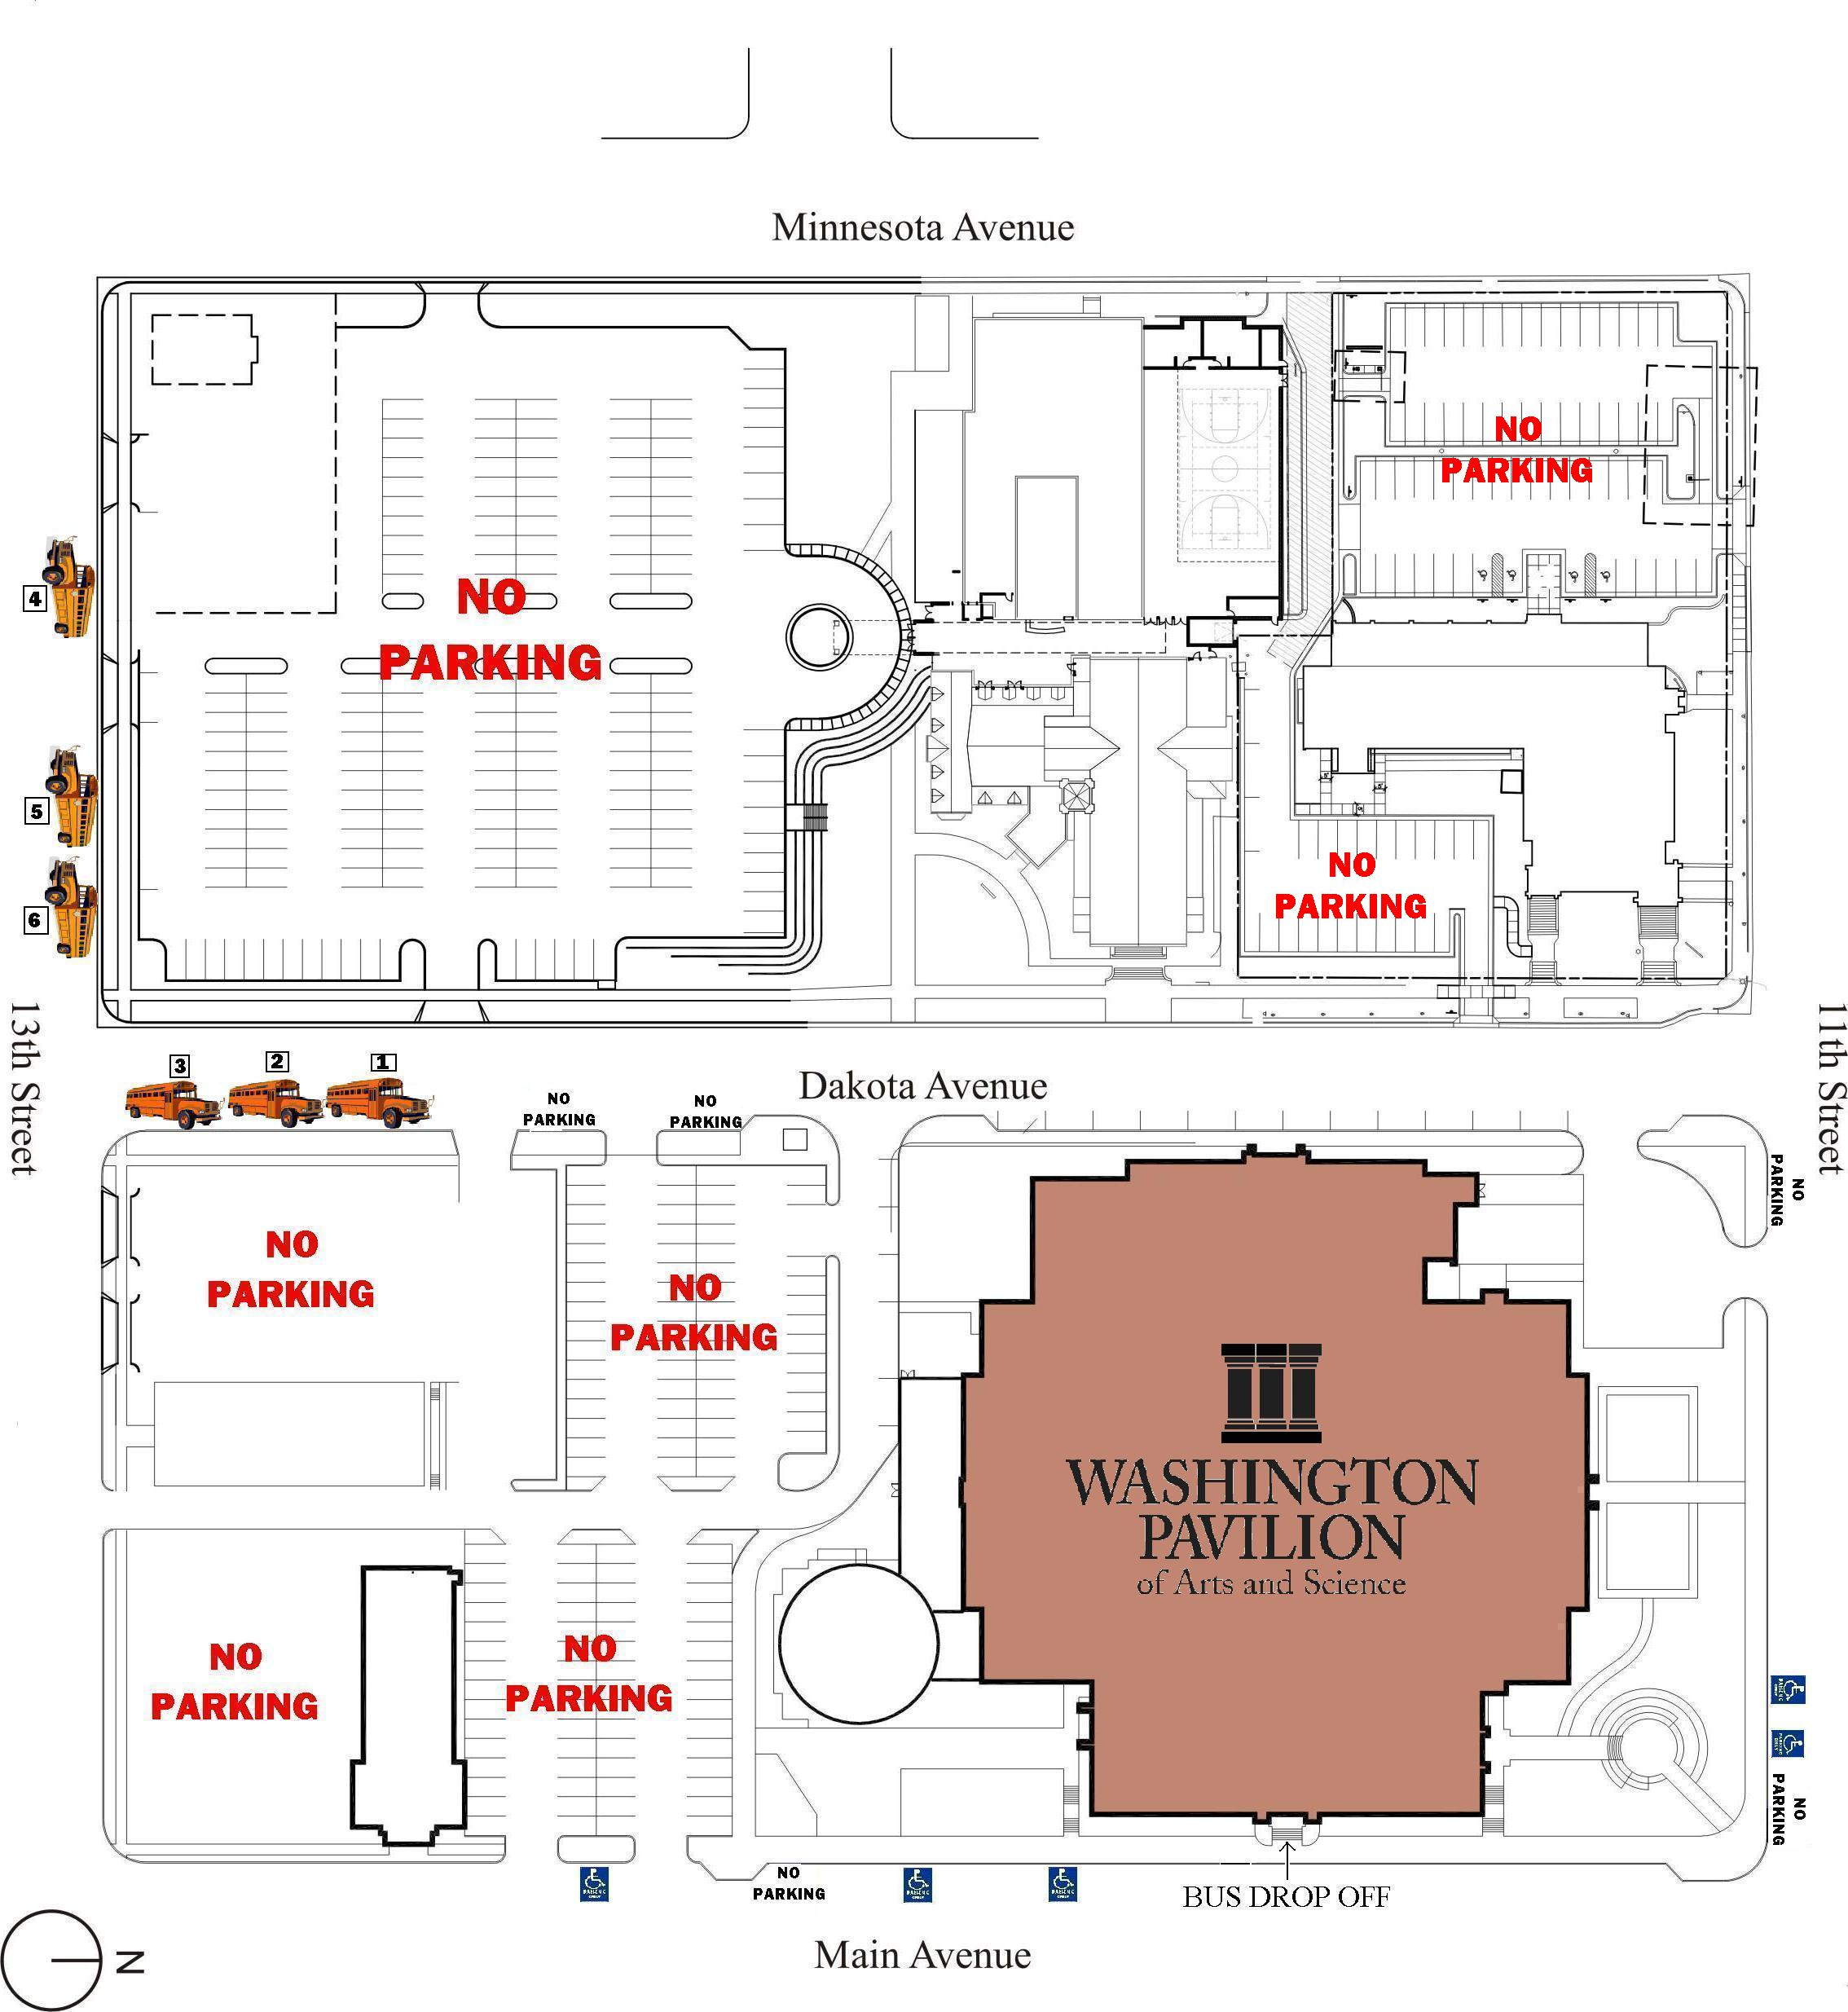 Washington Pavillion of Arts and Sciences Bus Parking Map 301 S